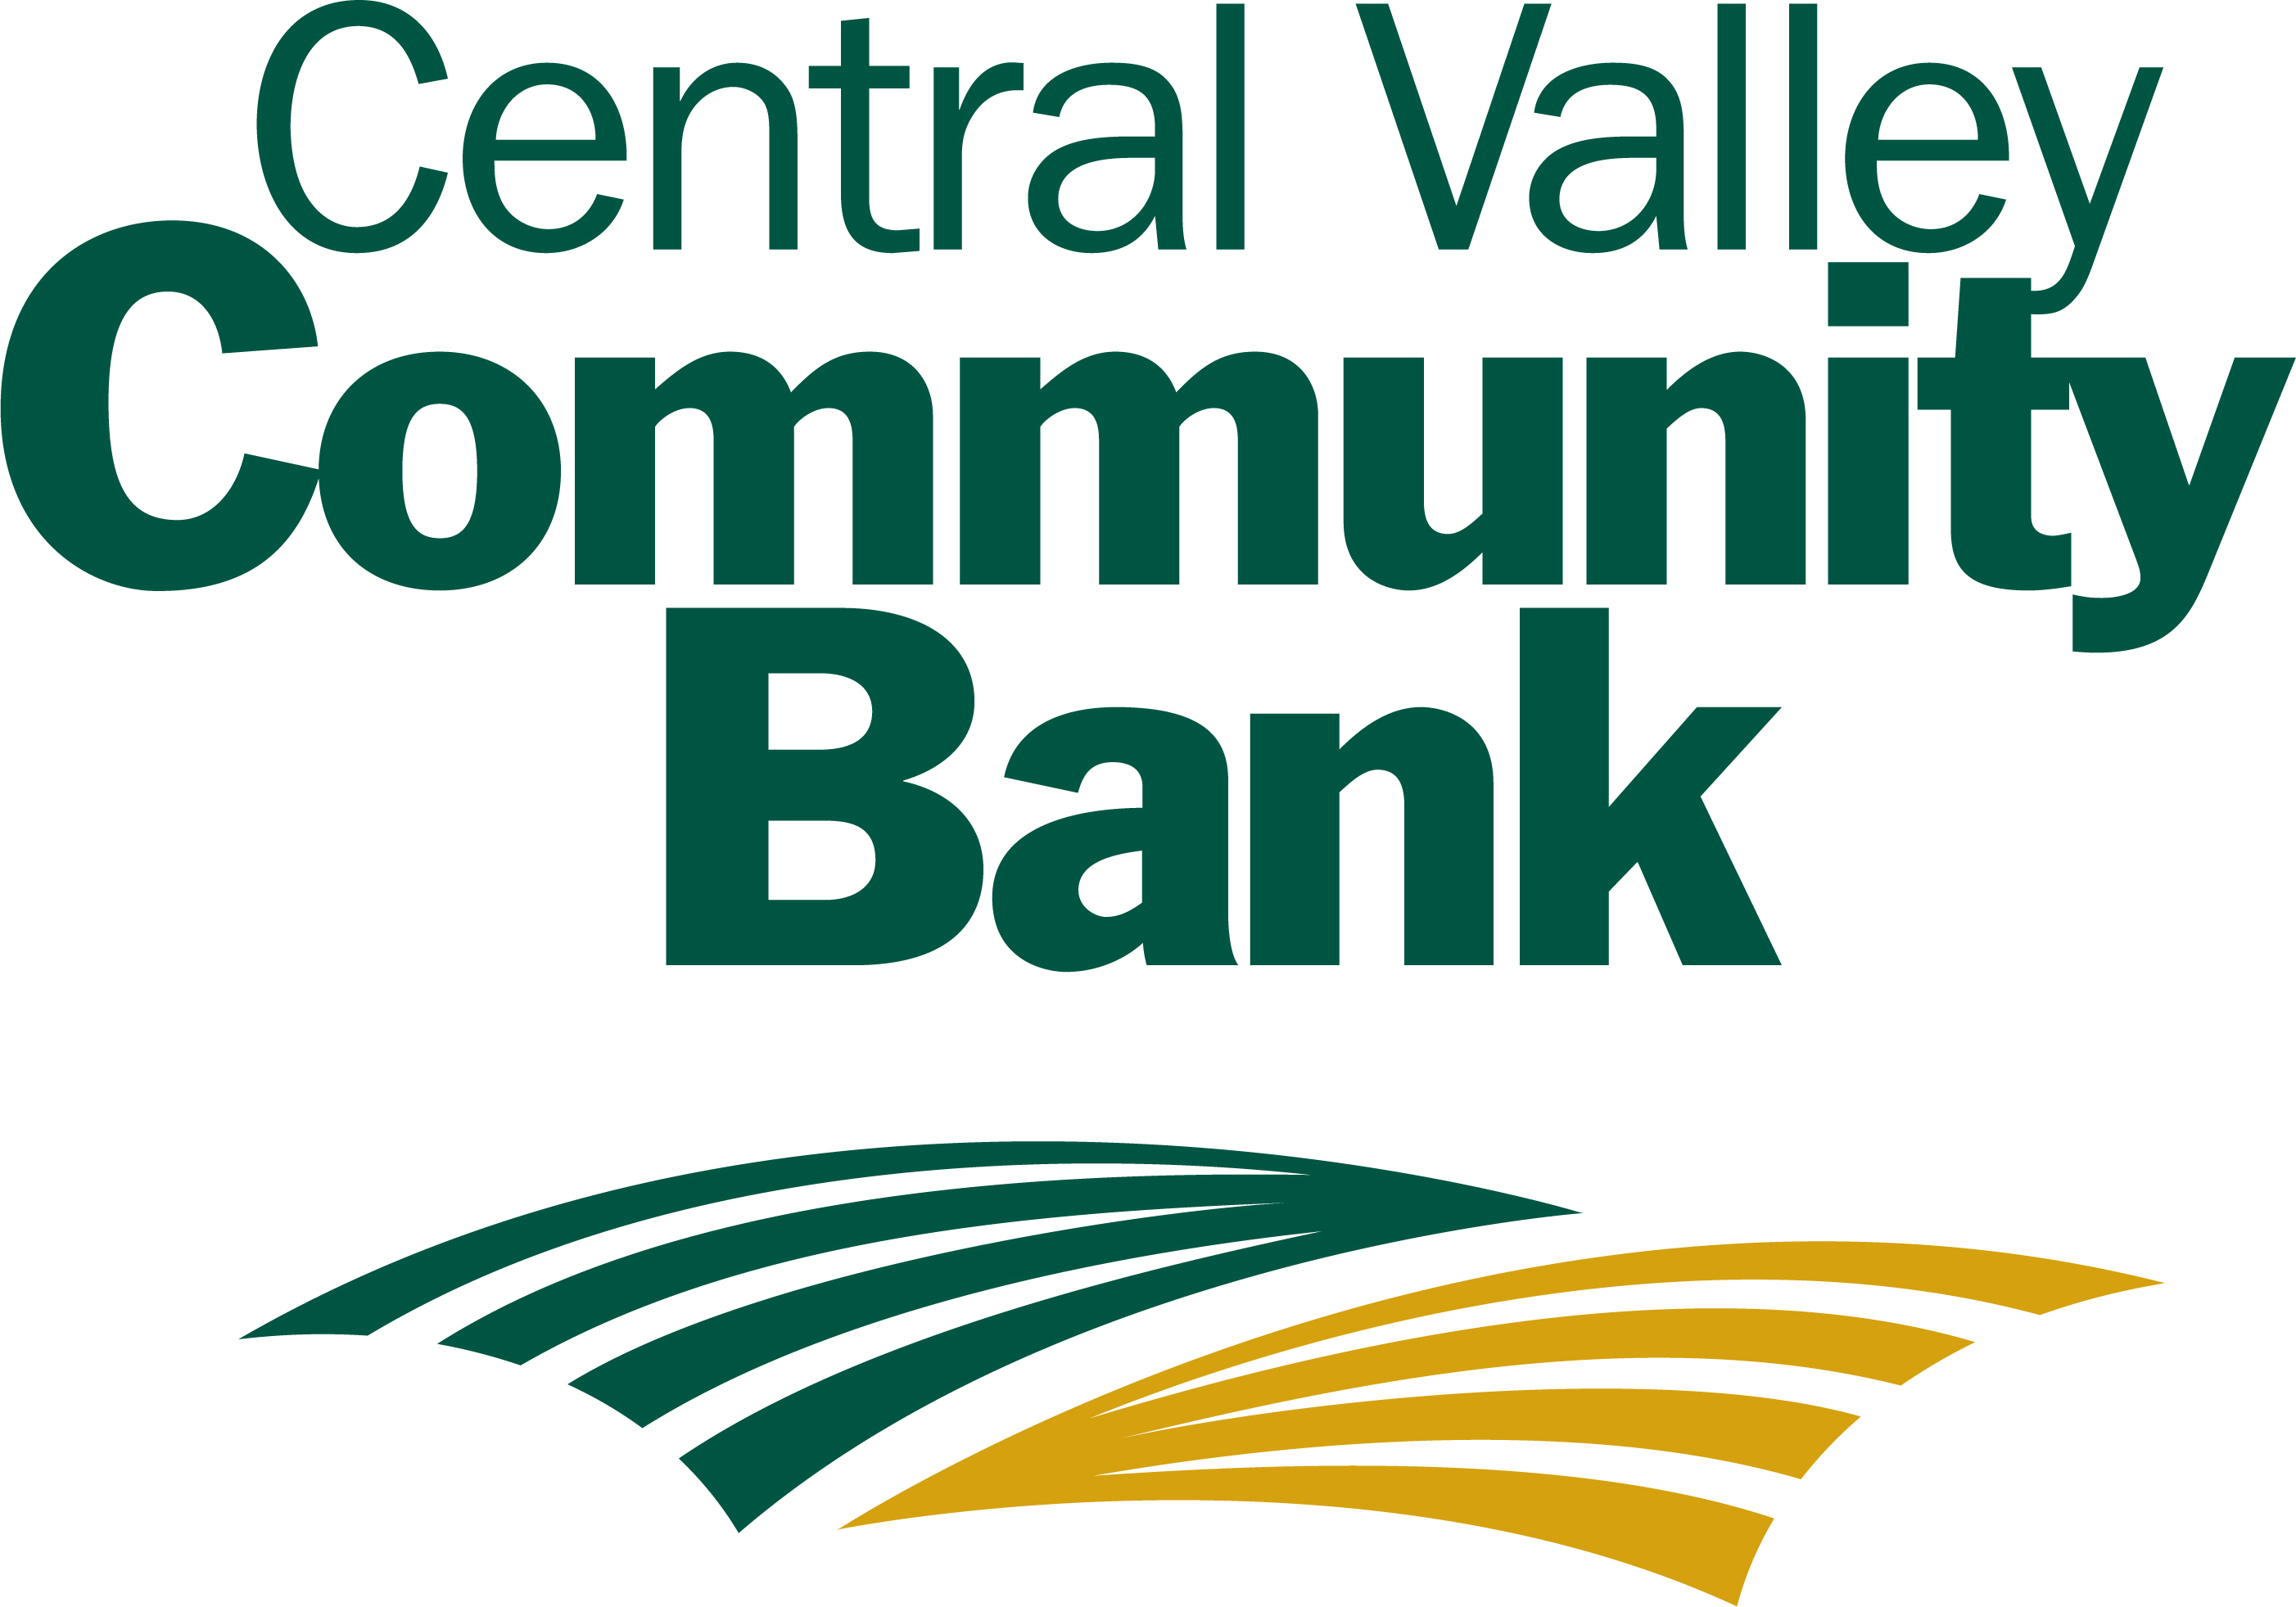 Central Valley Community Bank logo